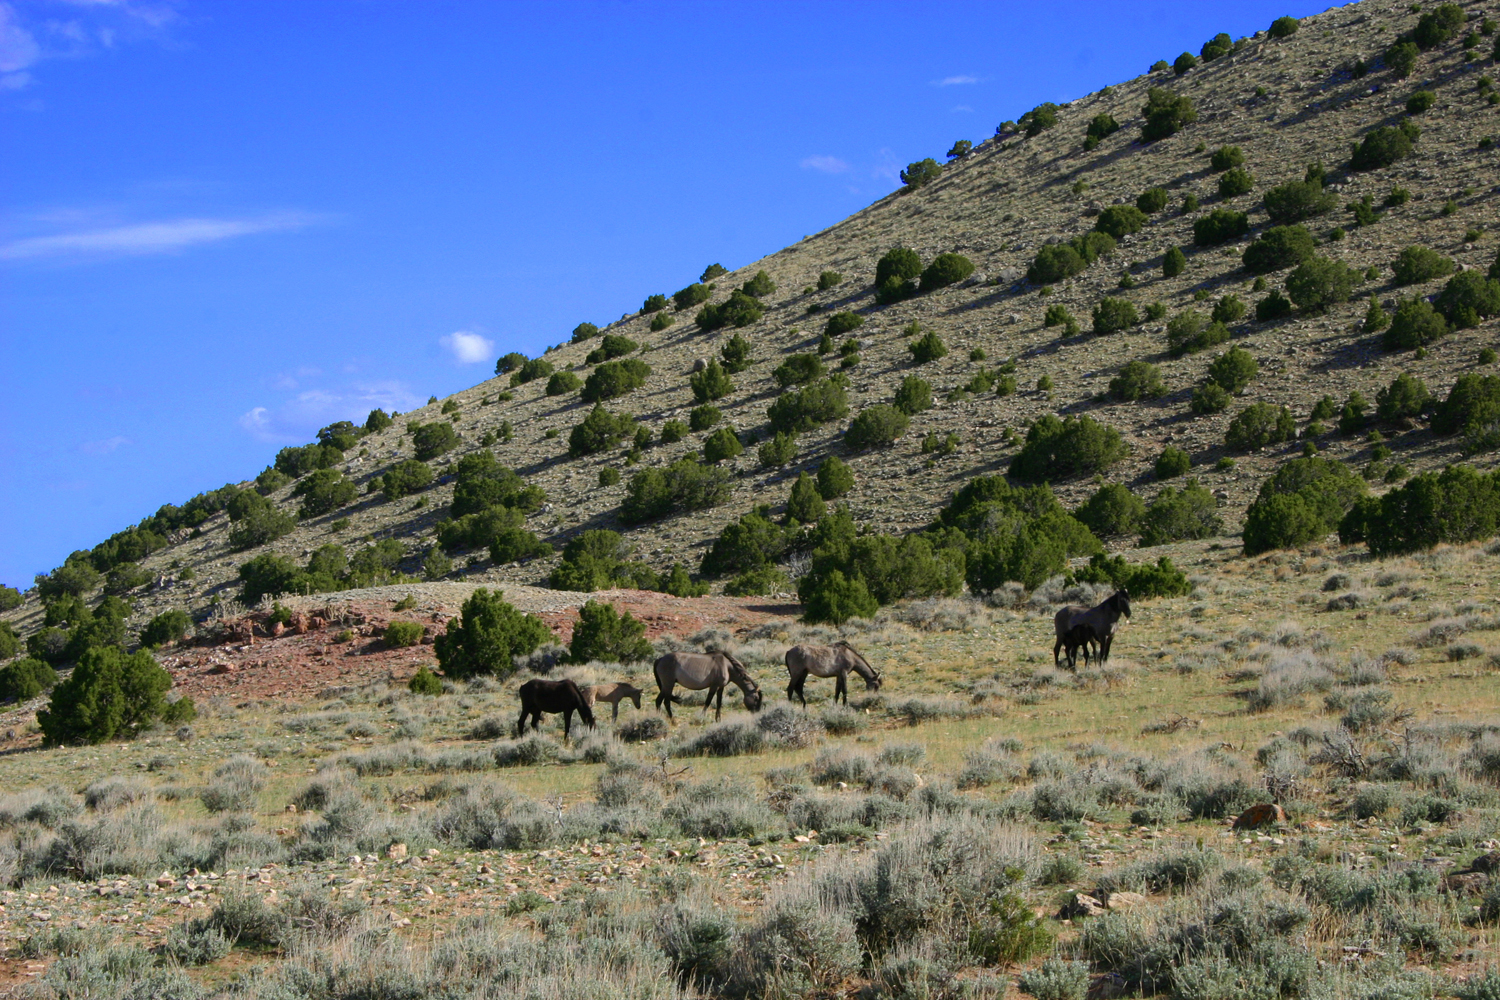 Pryor Mountain Wild Mustangs